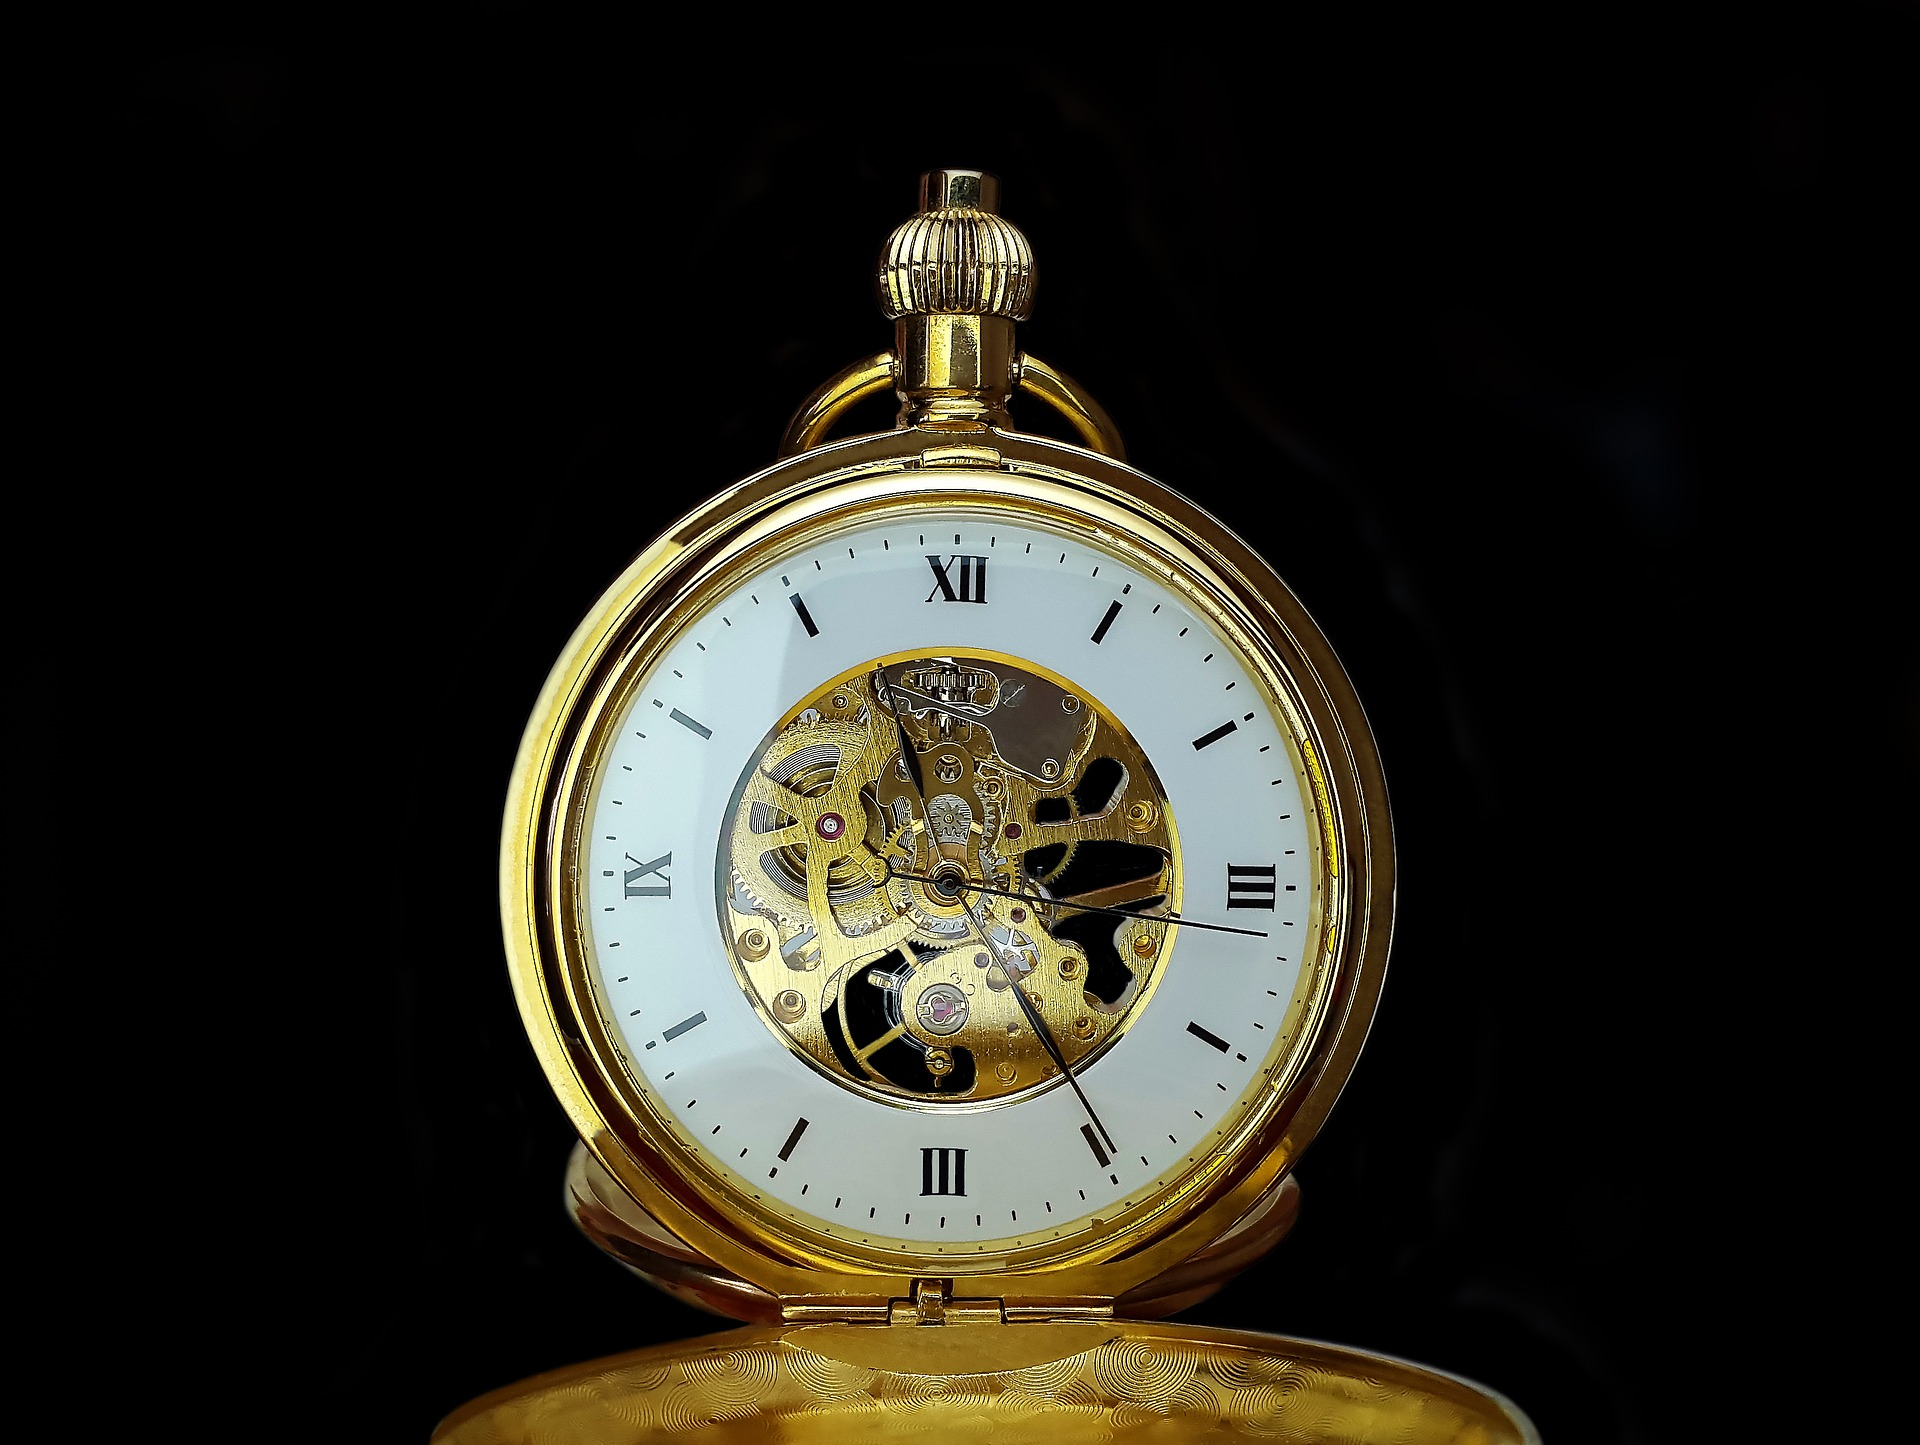 pocket-watch-2061228_1920.jpg